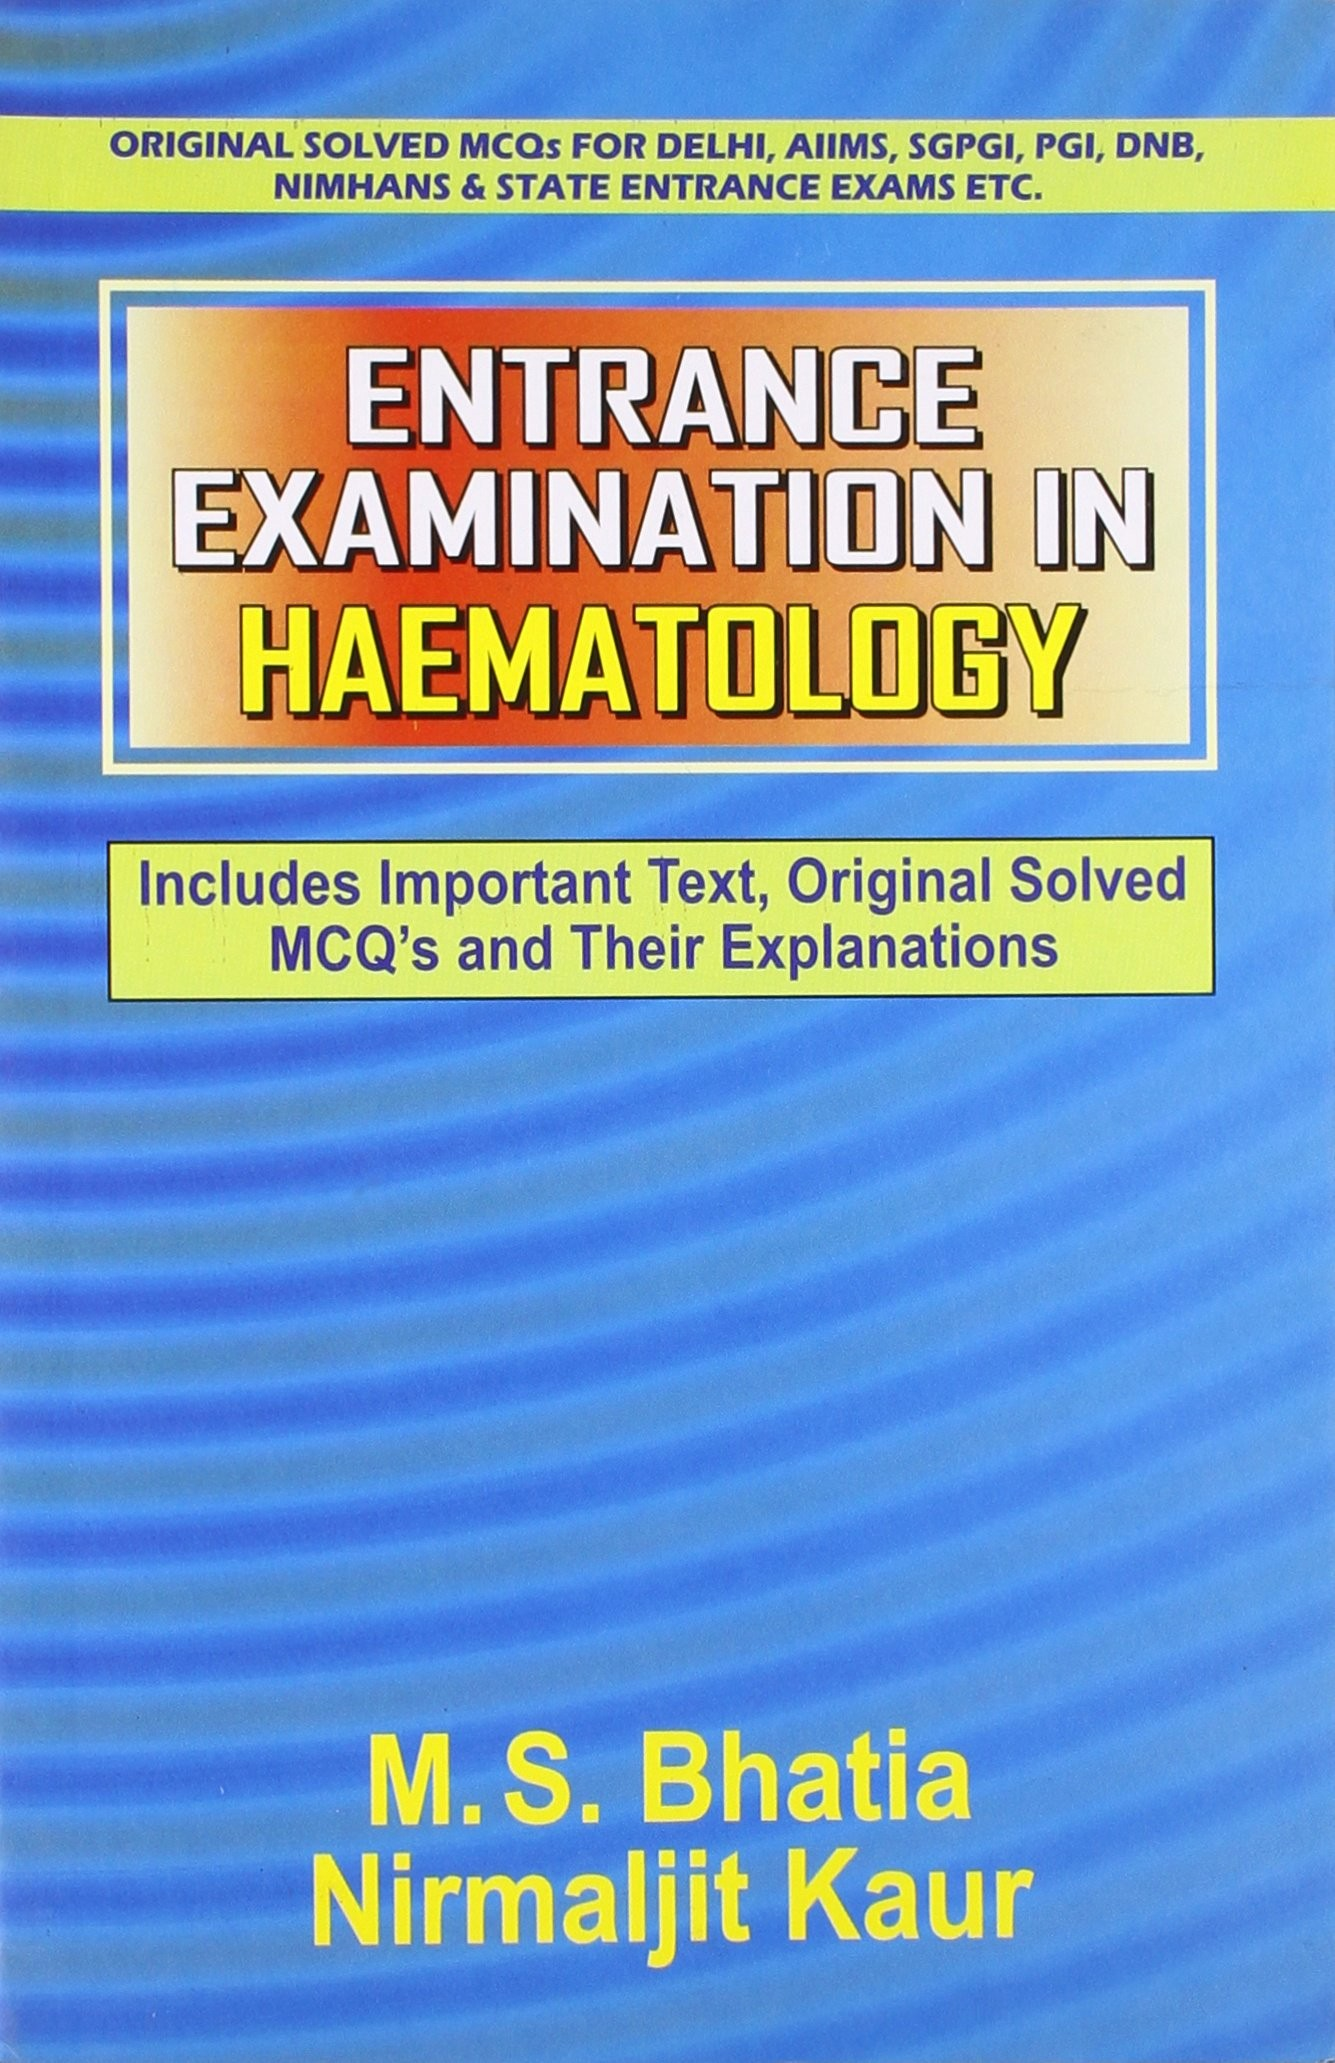 Entrance Examination in Haematology: Includes Important Text, Original Solved MCQ's and Their Explanations